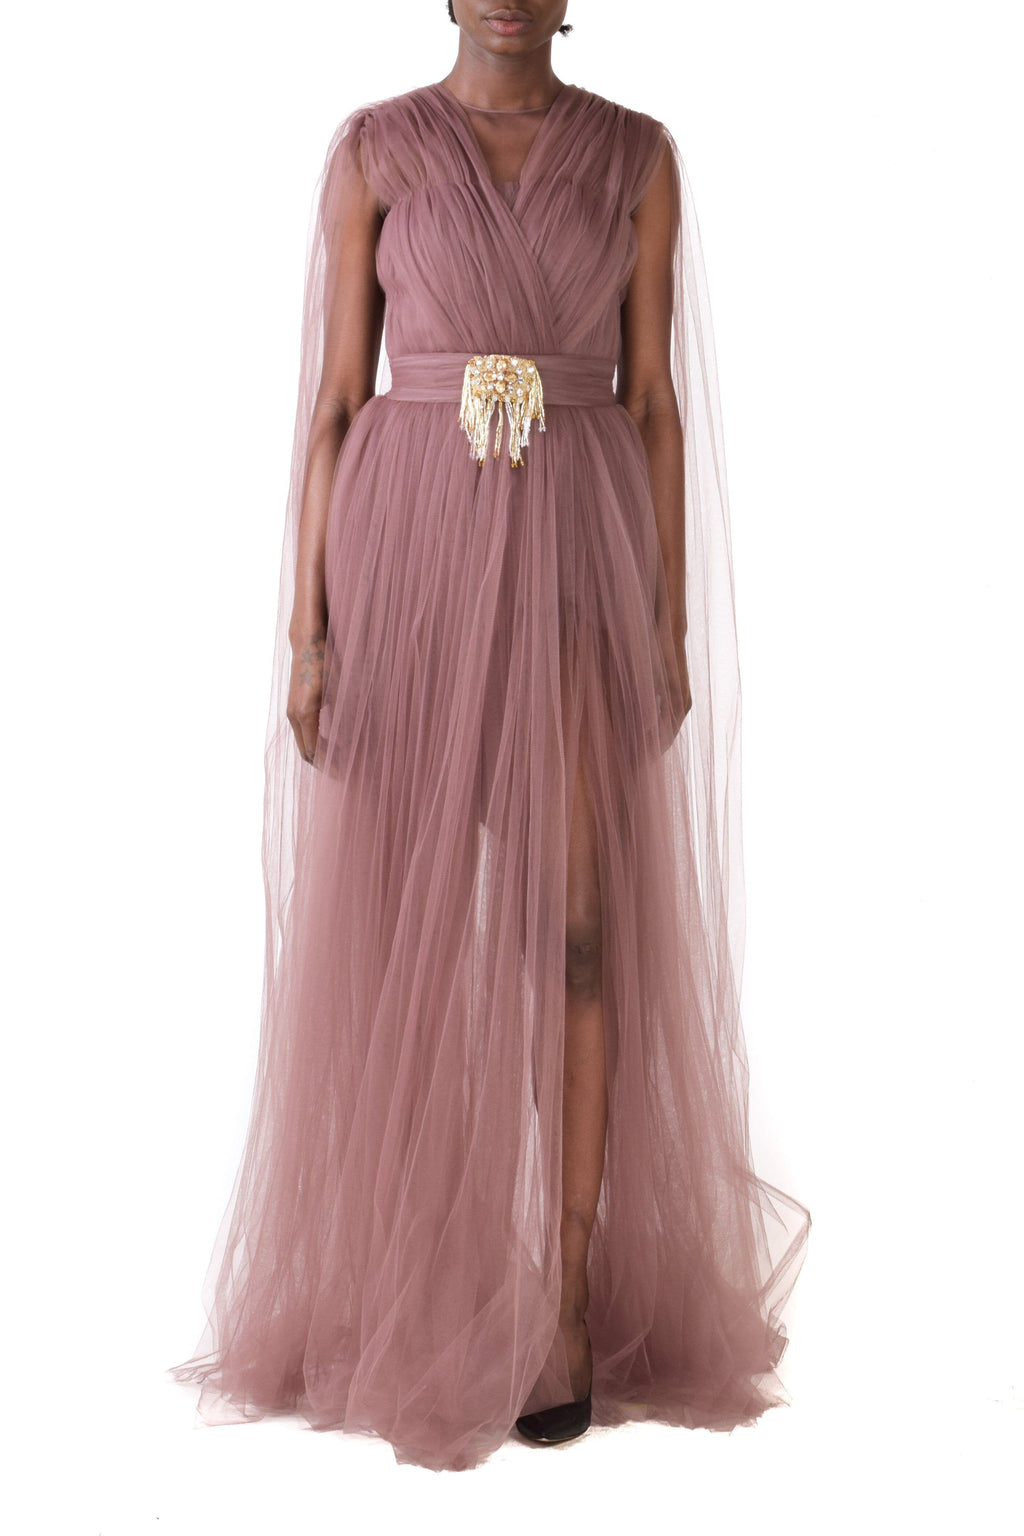 Brown Embellished Crystals & Fringes Tulle Gown With Ruffles & Puff Sleeves - BYTRIBUTE